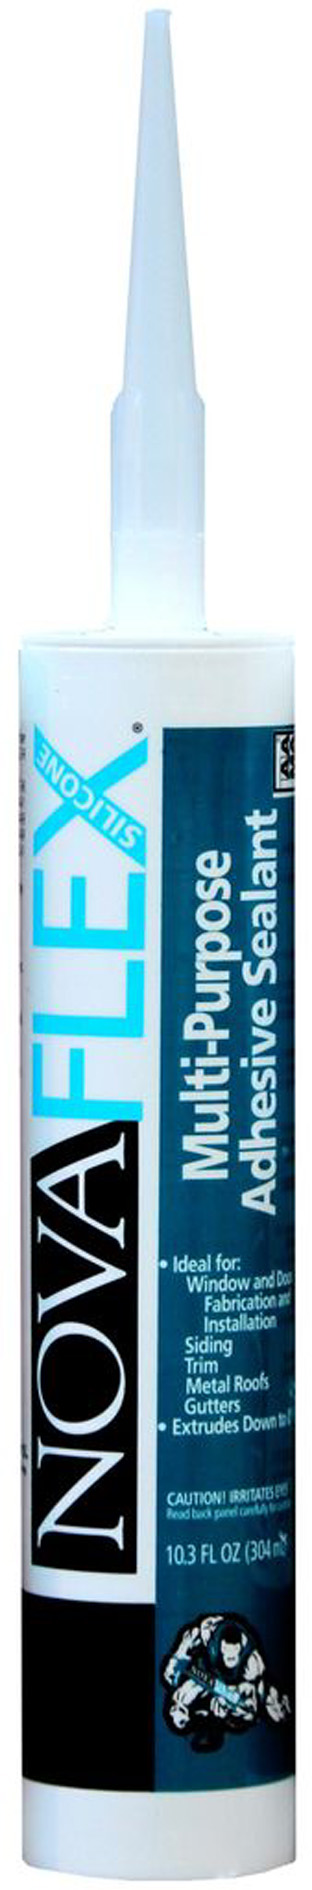 Window & Door OEM - Silicone Sealant & Adhesive | Silicone Grease